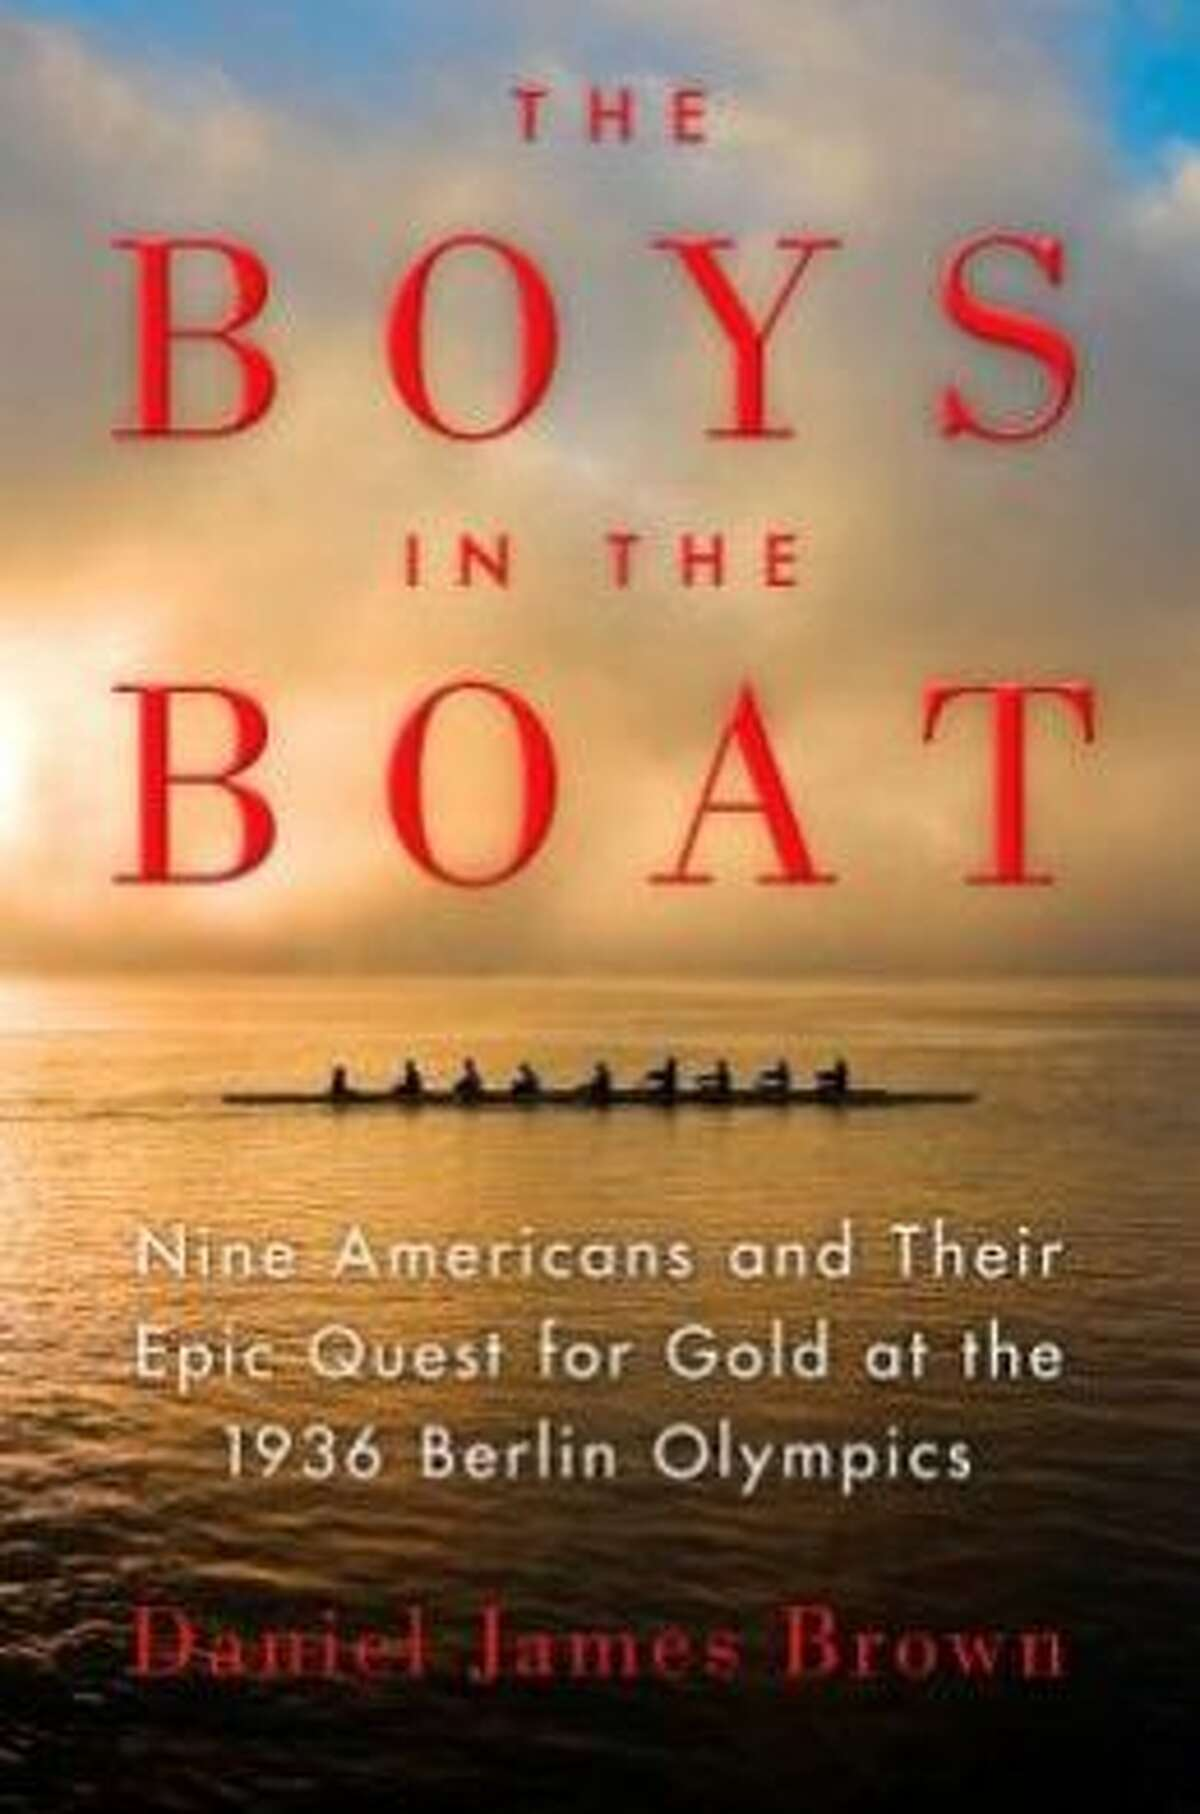 """""""The Boys in the Boat: Nine Americans and Their Epic Quest for Gold at the 1936 Berlin Olympics,"""" by Daniel James Brown A rousing underdog story and terrific historical account of the infamous 1936 Olympiad that will have you cheering as you read. Now out in paperback. (BB)"""